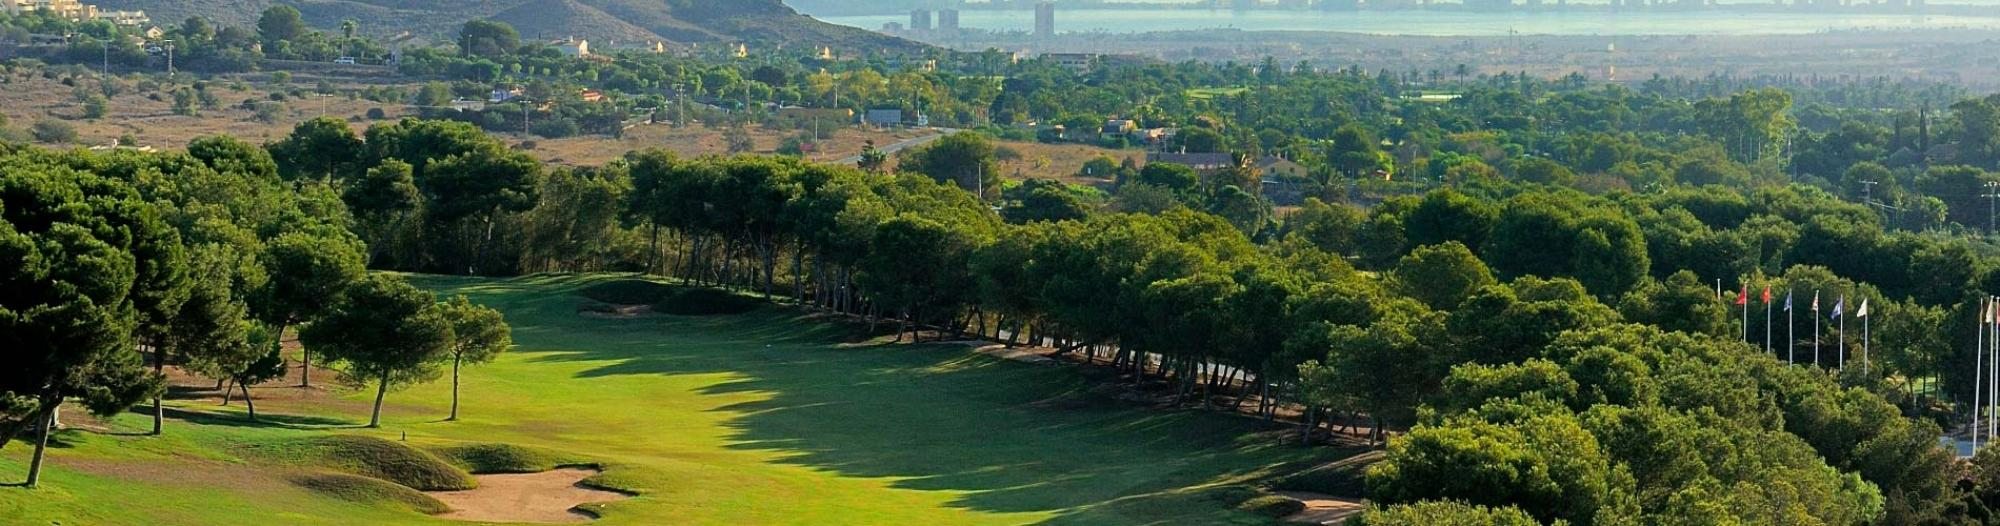 View La Manga Golf Club, West Course's lovely golf course in magnificent Costa Blanca.